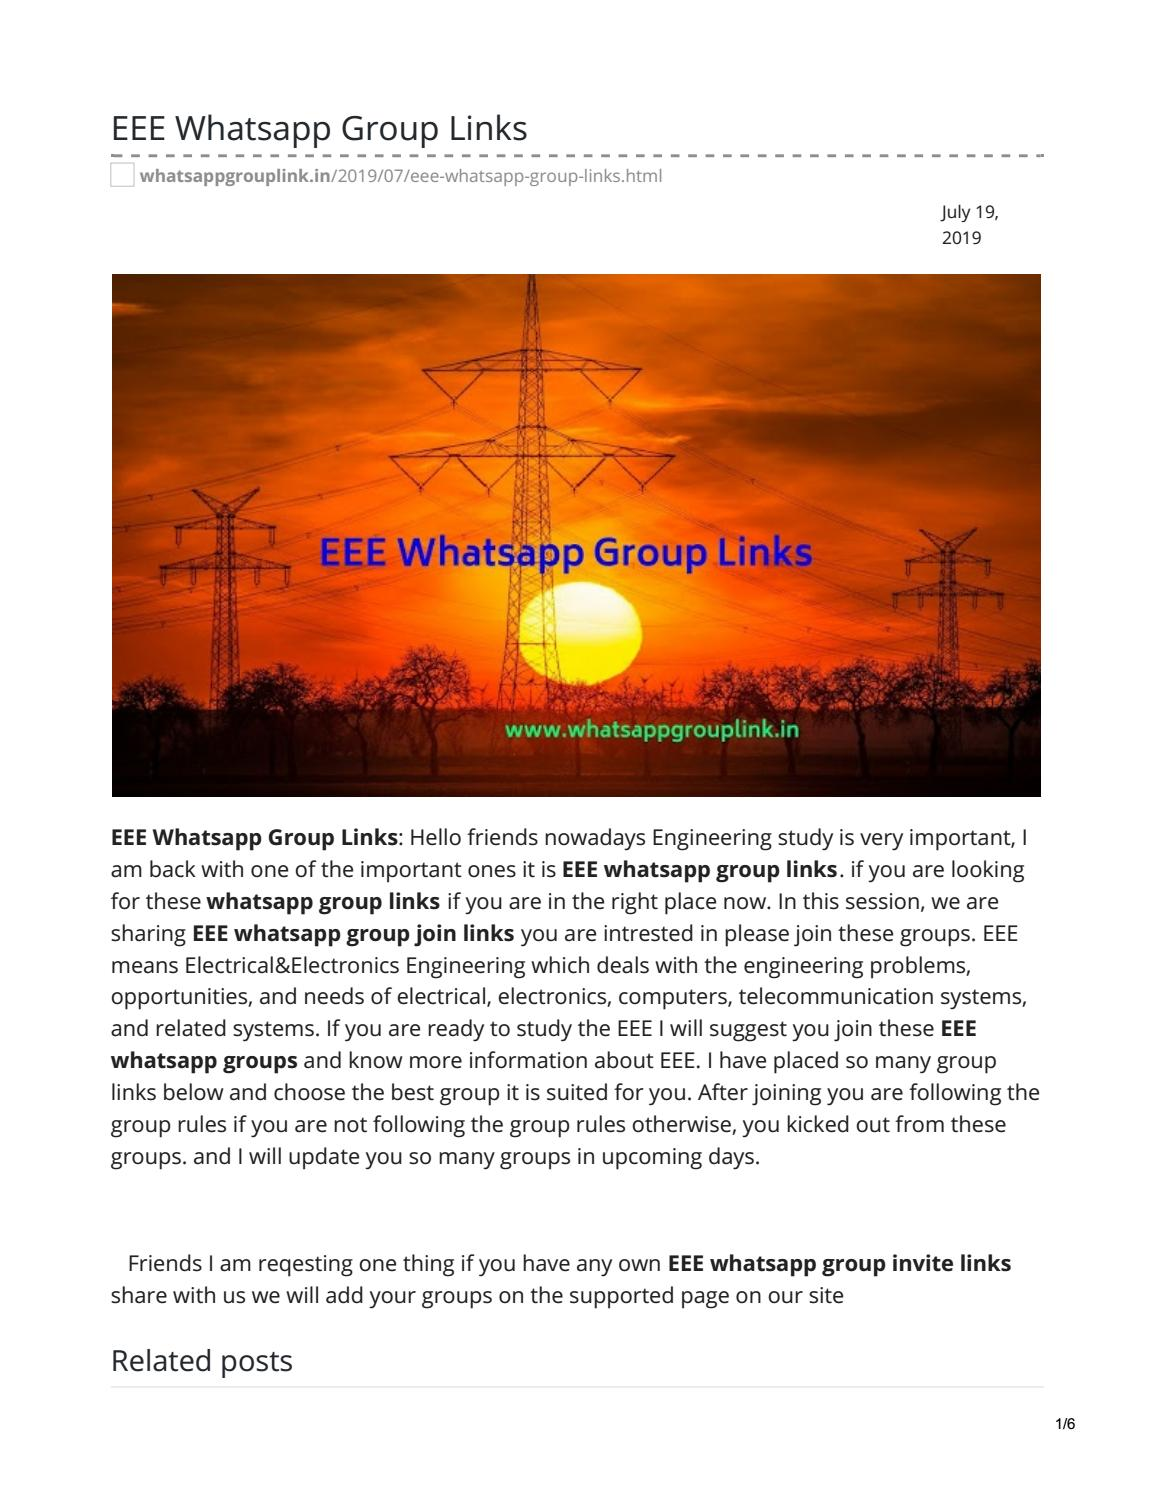 EEE Whatsapp Group Links by whatsappgrouplink77 - issuu